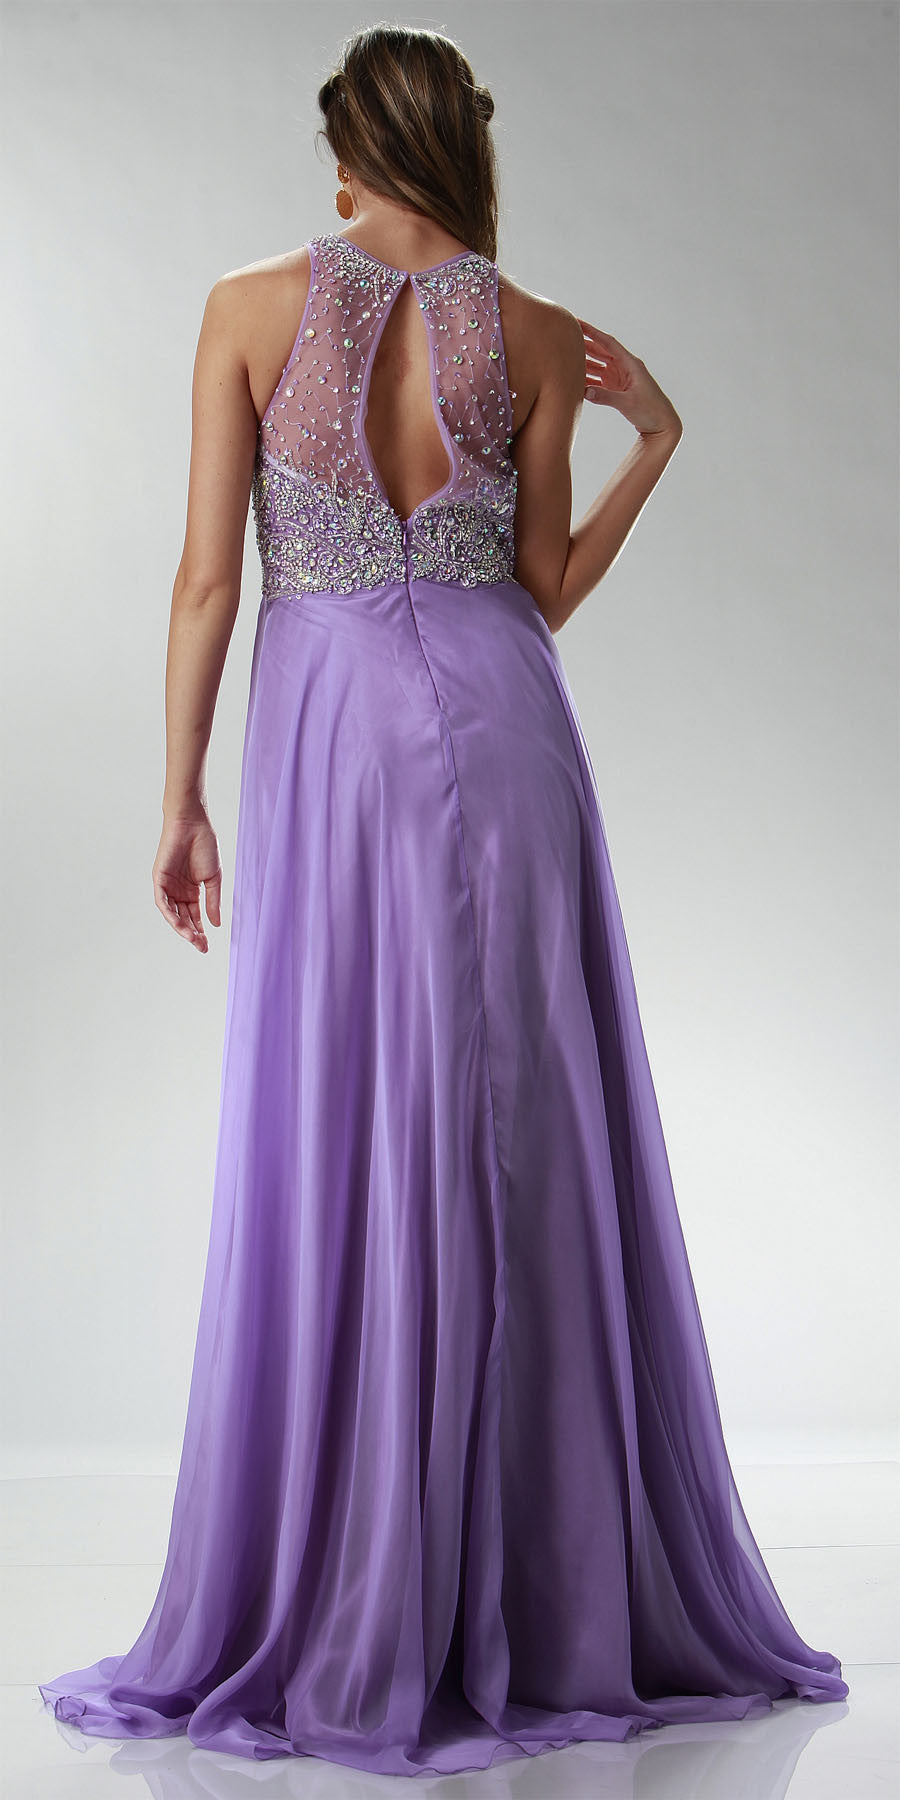 ON SPECIAL LIMITED STOCK - Sheer Halter Neckline Long A Line Lilac Prom Dress